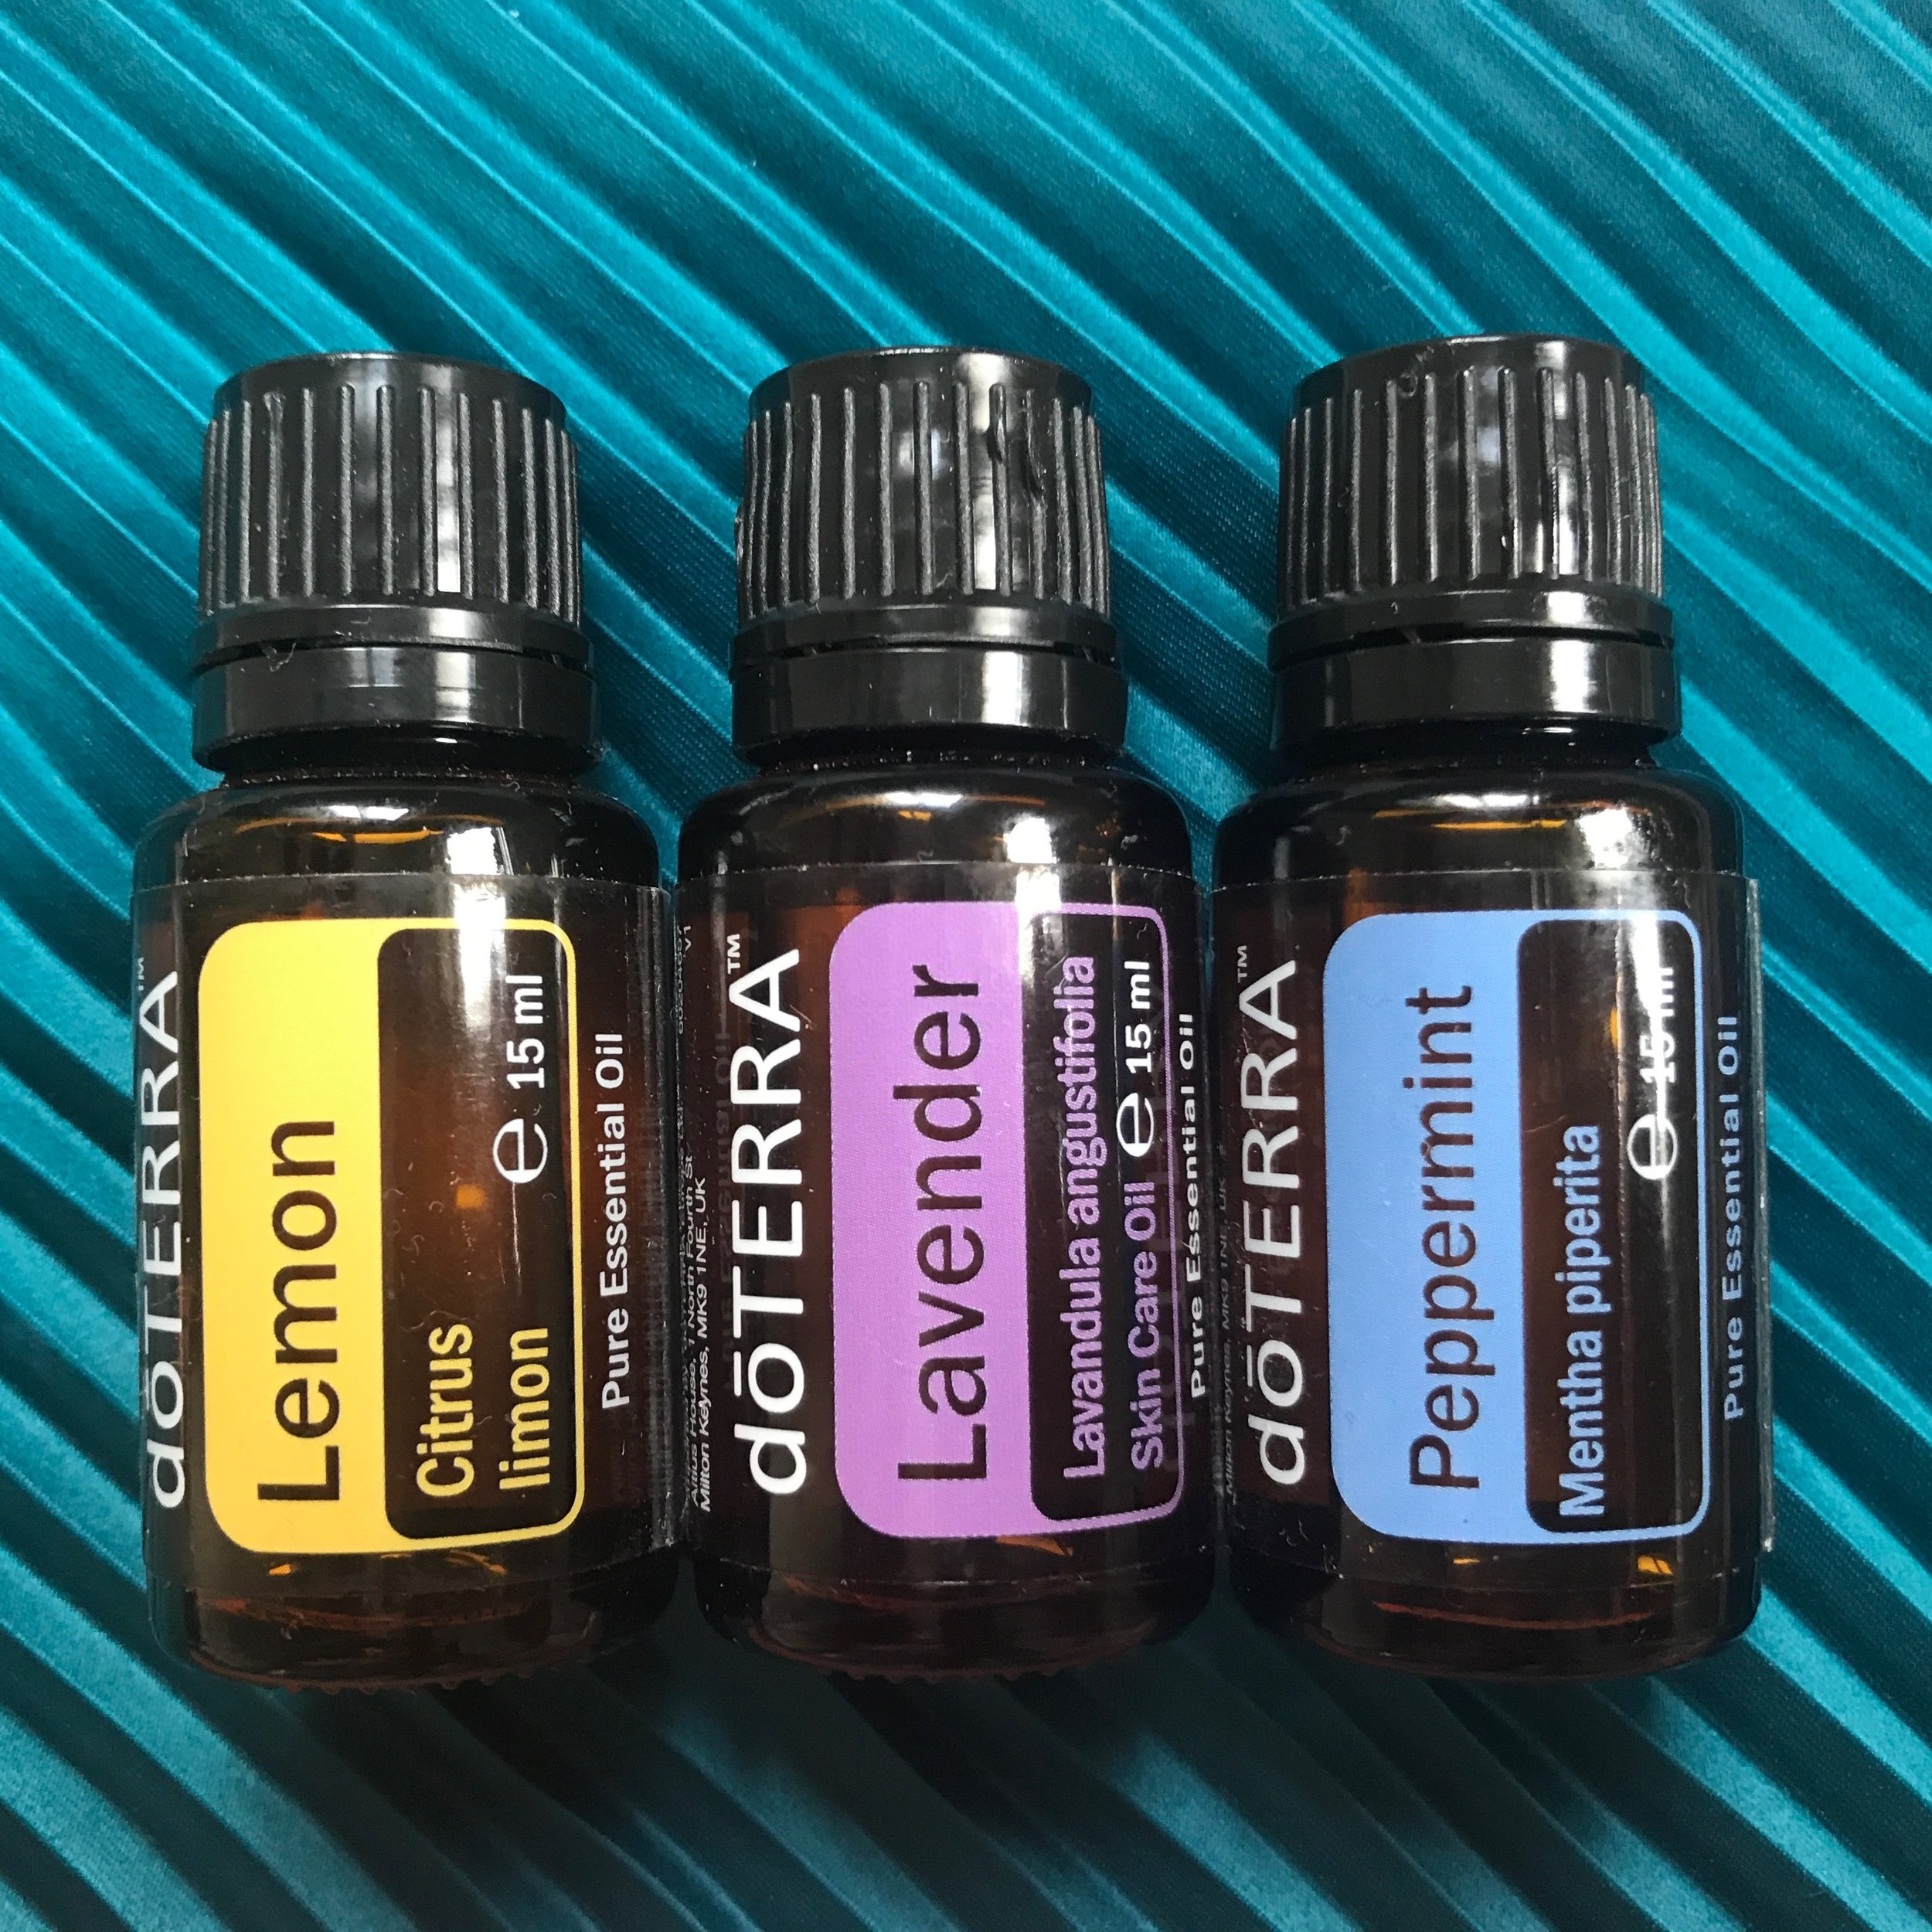 Beginners trio €61#32140005 - Lavendel 15 ml, calming and relaxing properties that promote peaceful sleep and ease feelings of tension.Peppermint 15 ml, uplifting, energizing. When ingested, promotes healthy respiratory function and clear breathing. Promotes digestive health when taken internally. Repels bugs naturally.Lemon 15 ml, cleansing, purifying, and invigorating. Naturally cleanses the body and aids in digestion(If you are not yet a member remember to add €25 for the enrollment fee).